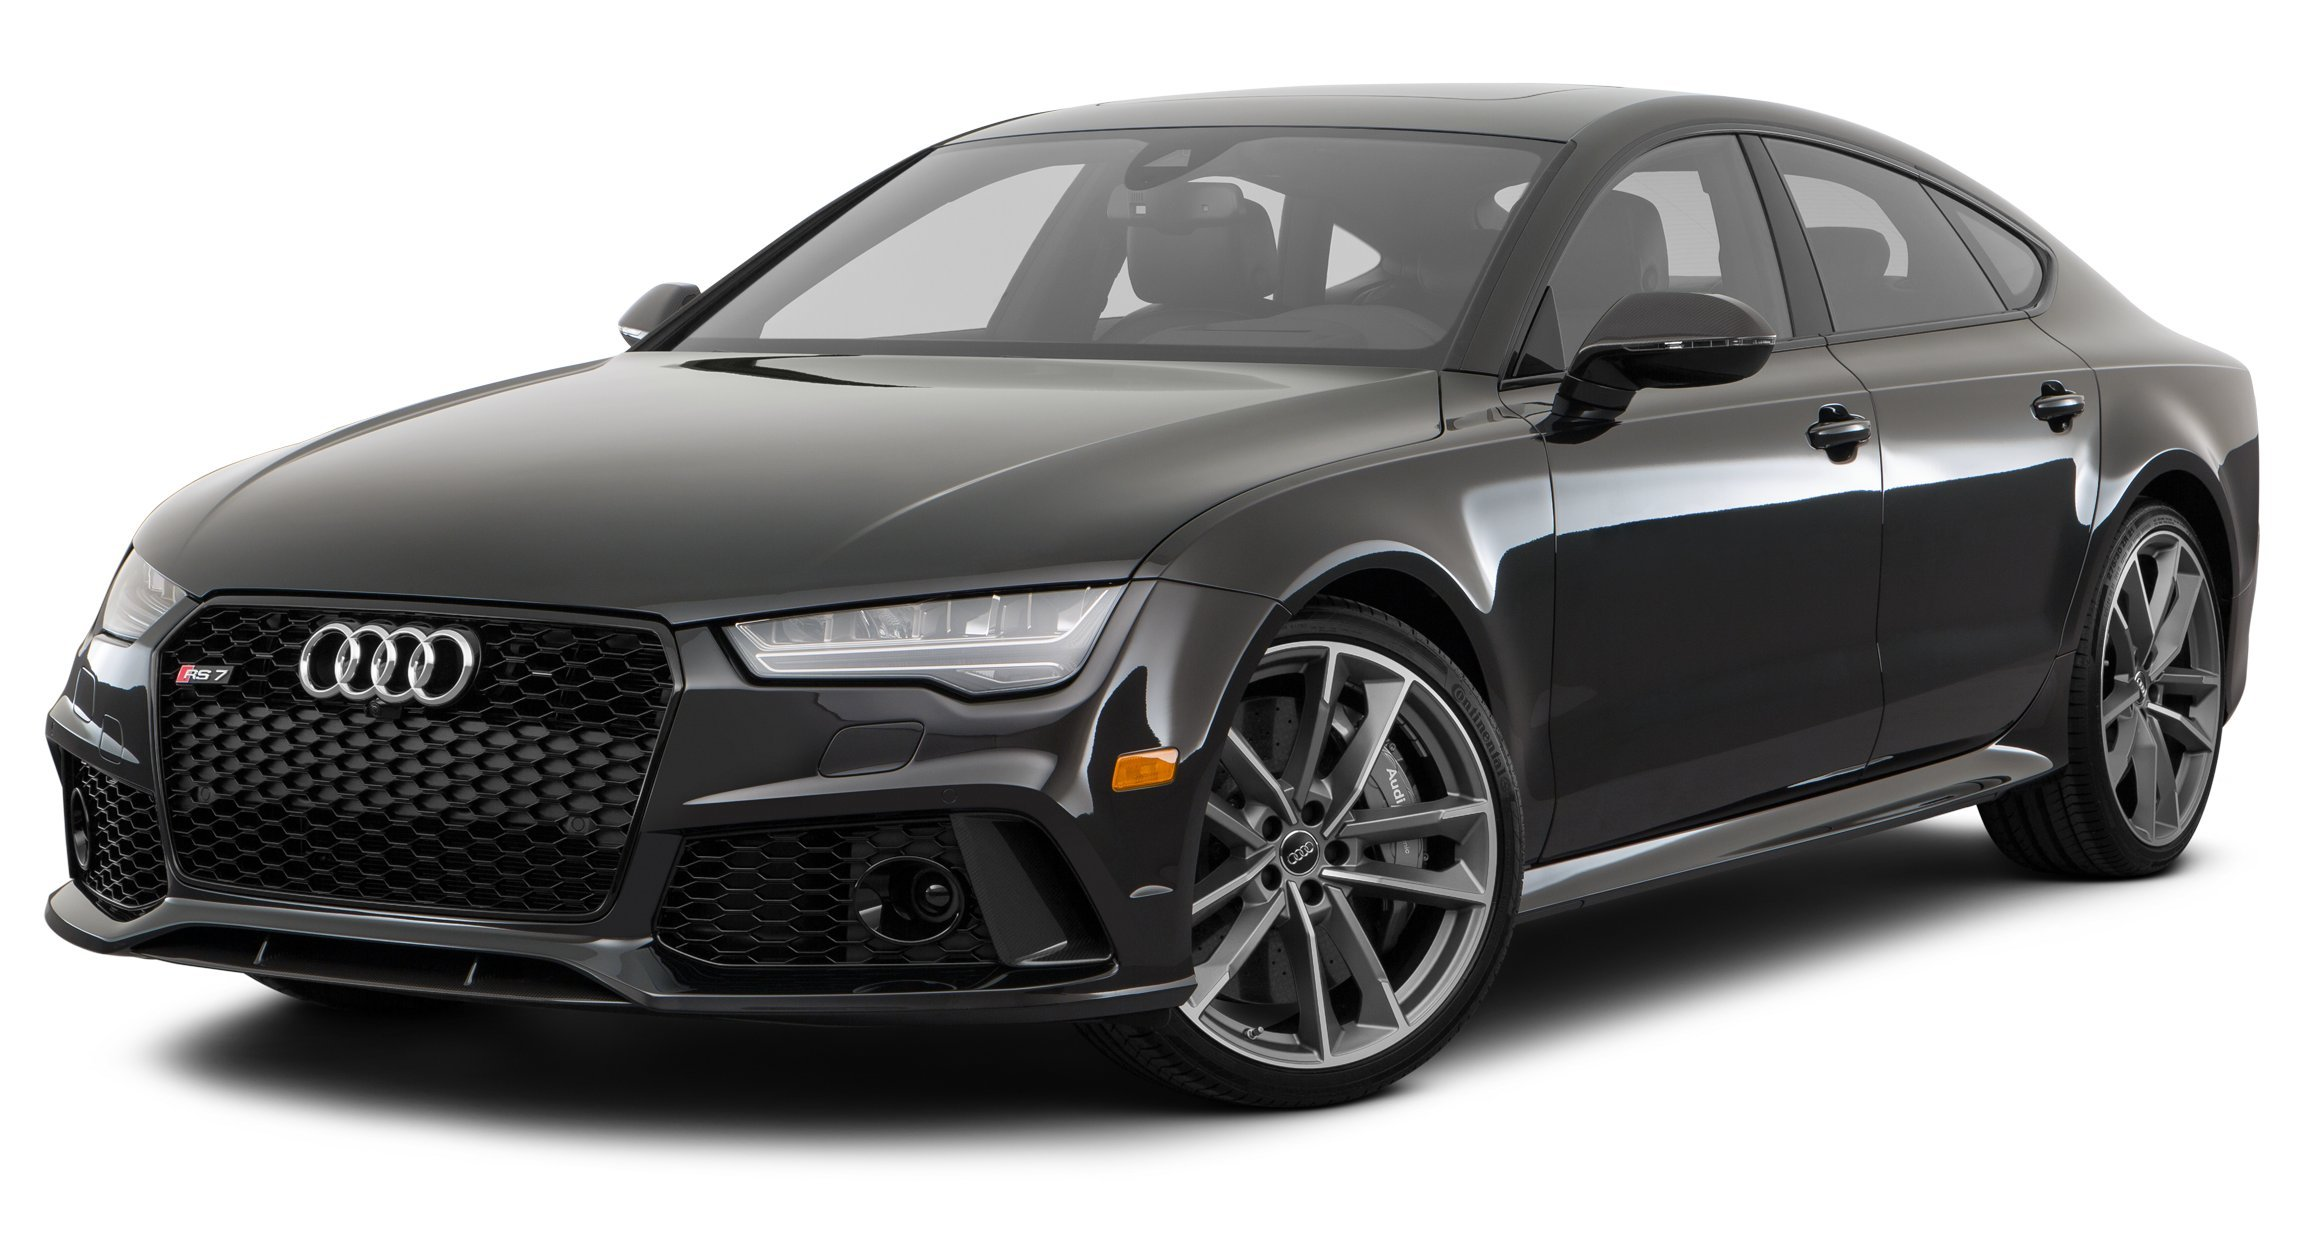 2018 audi rs7 reviews images and specs vehicles. Black Bedroom Furniture Sets. Home Design Ideas